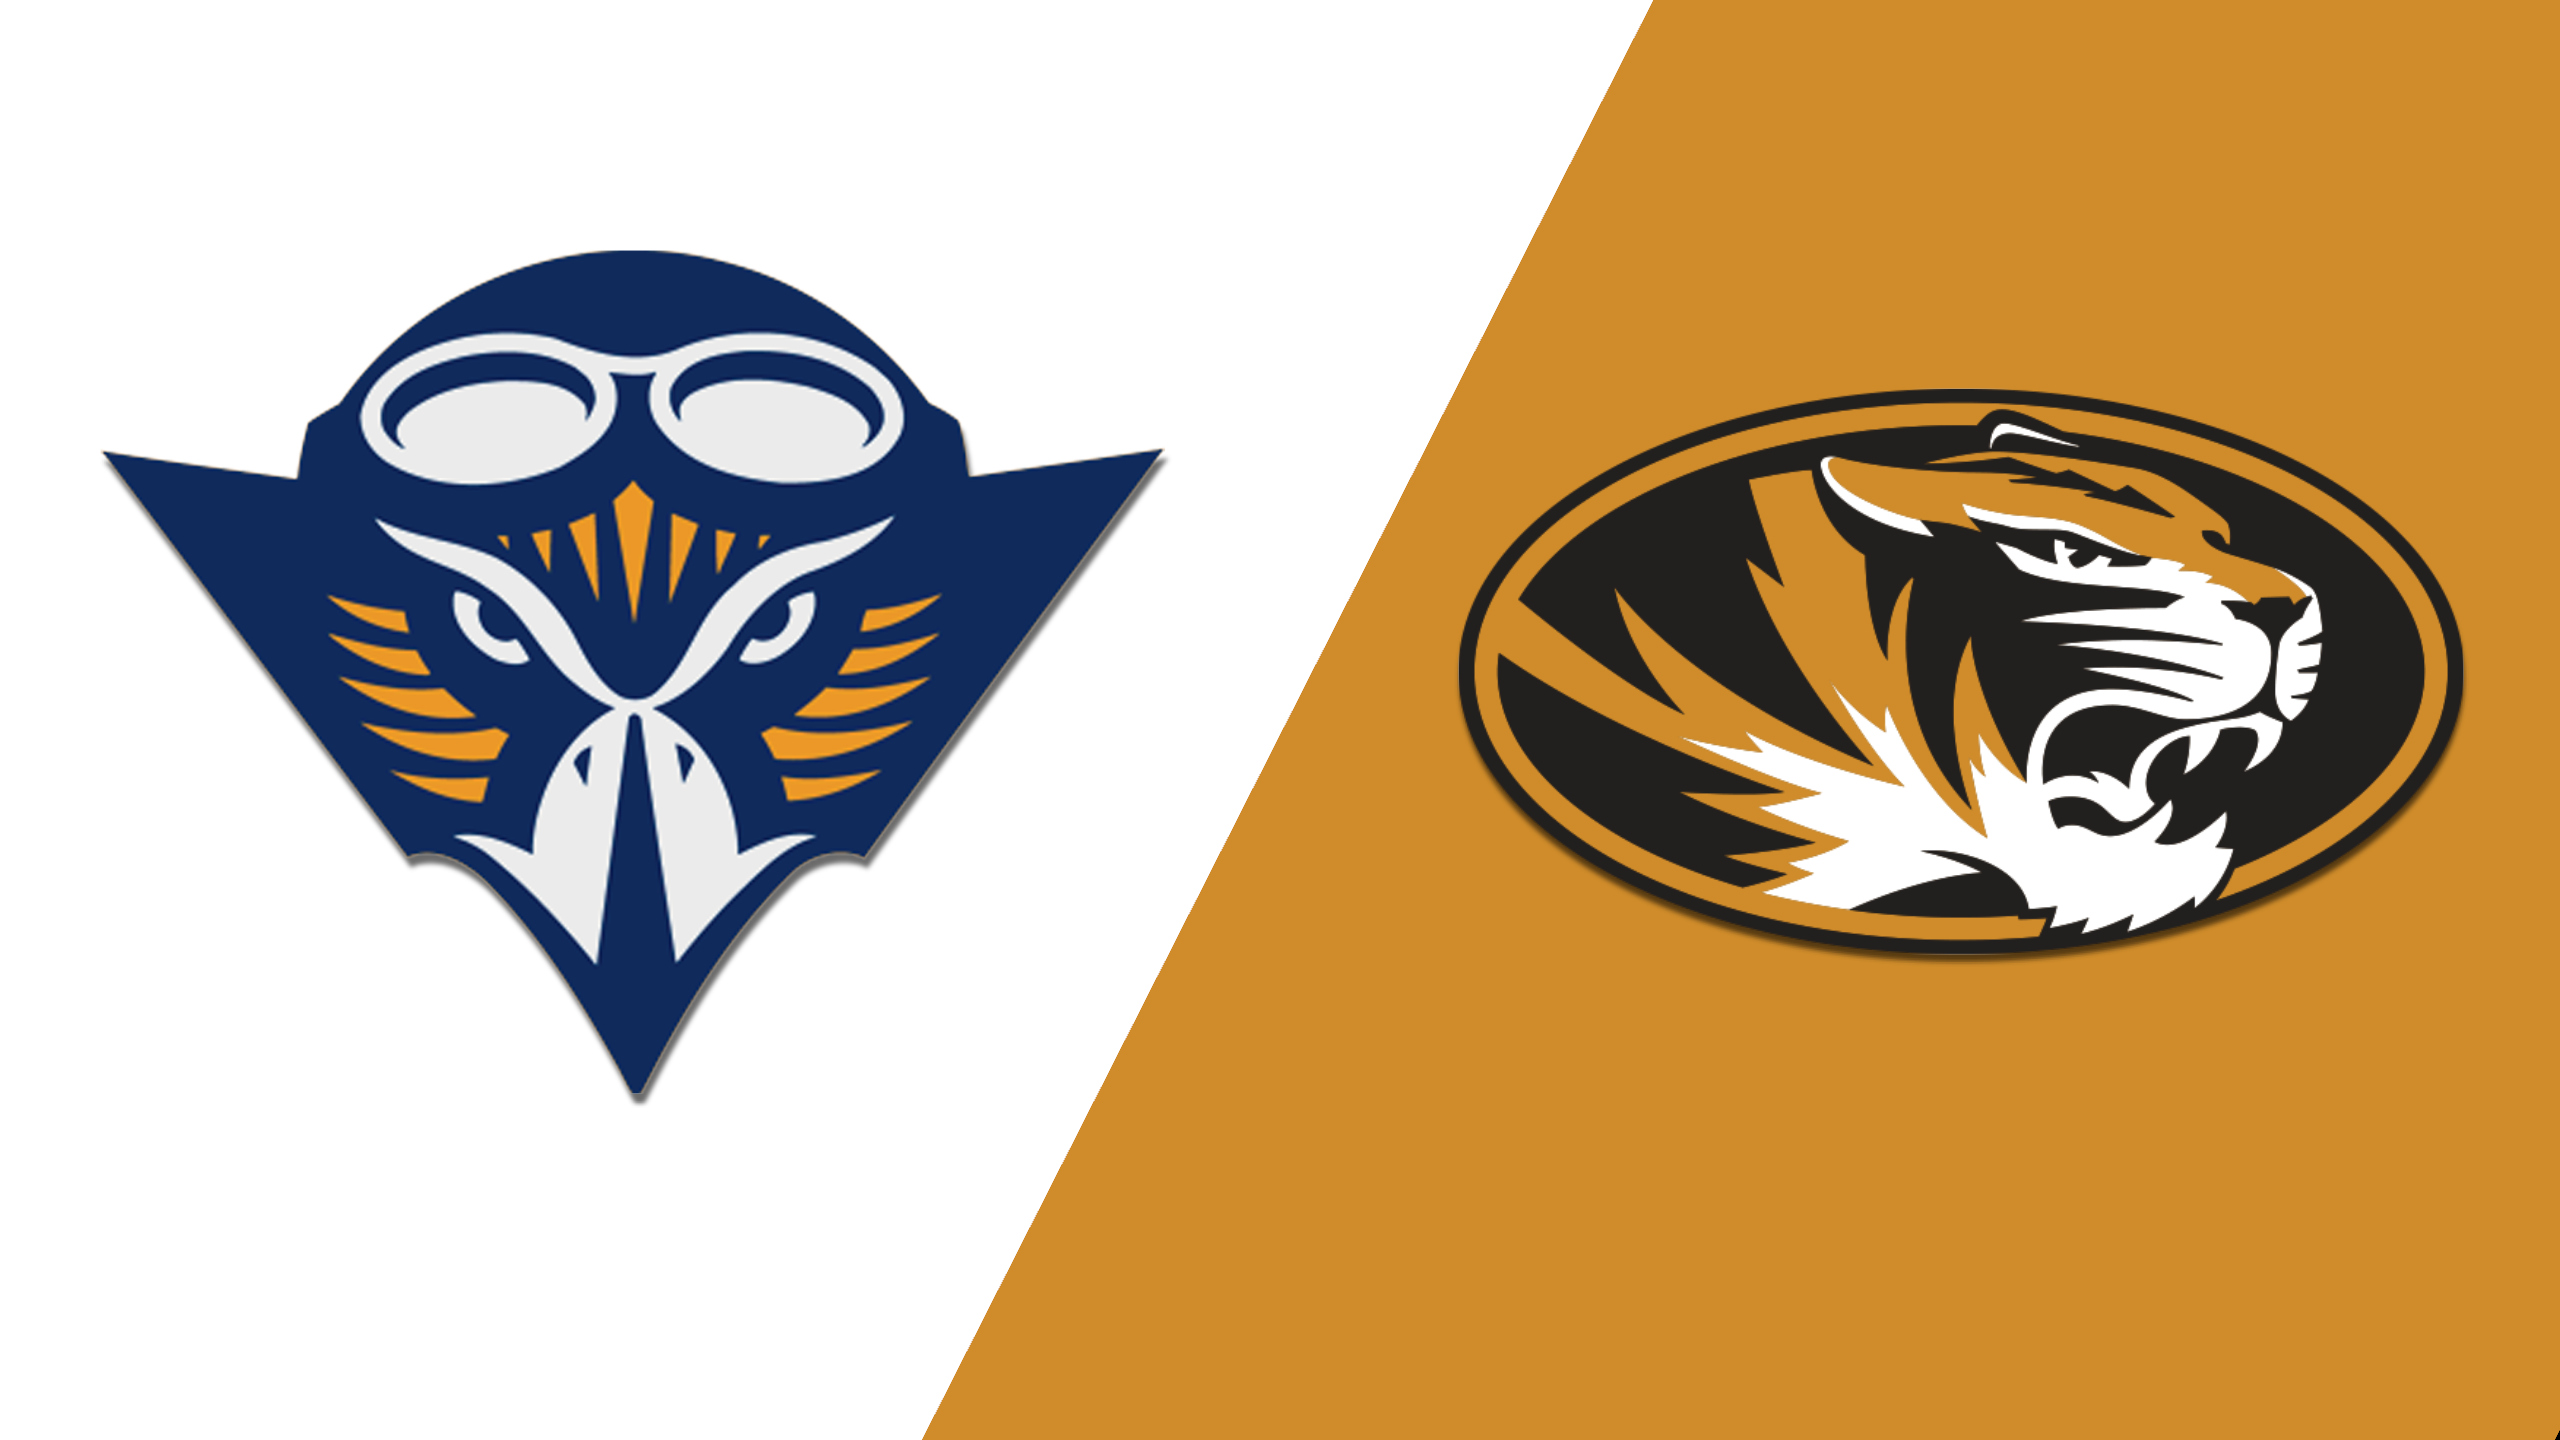 UT Martin vs. Missouri (Football) (re-air)